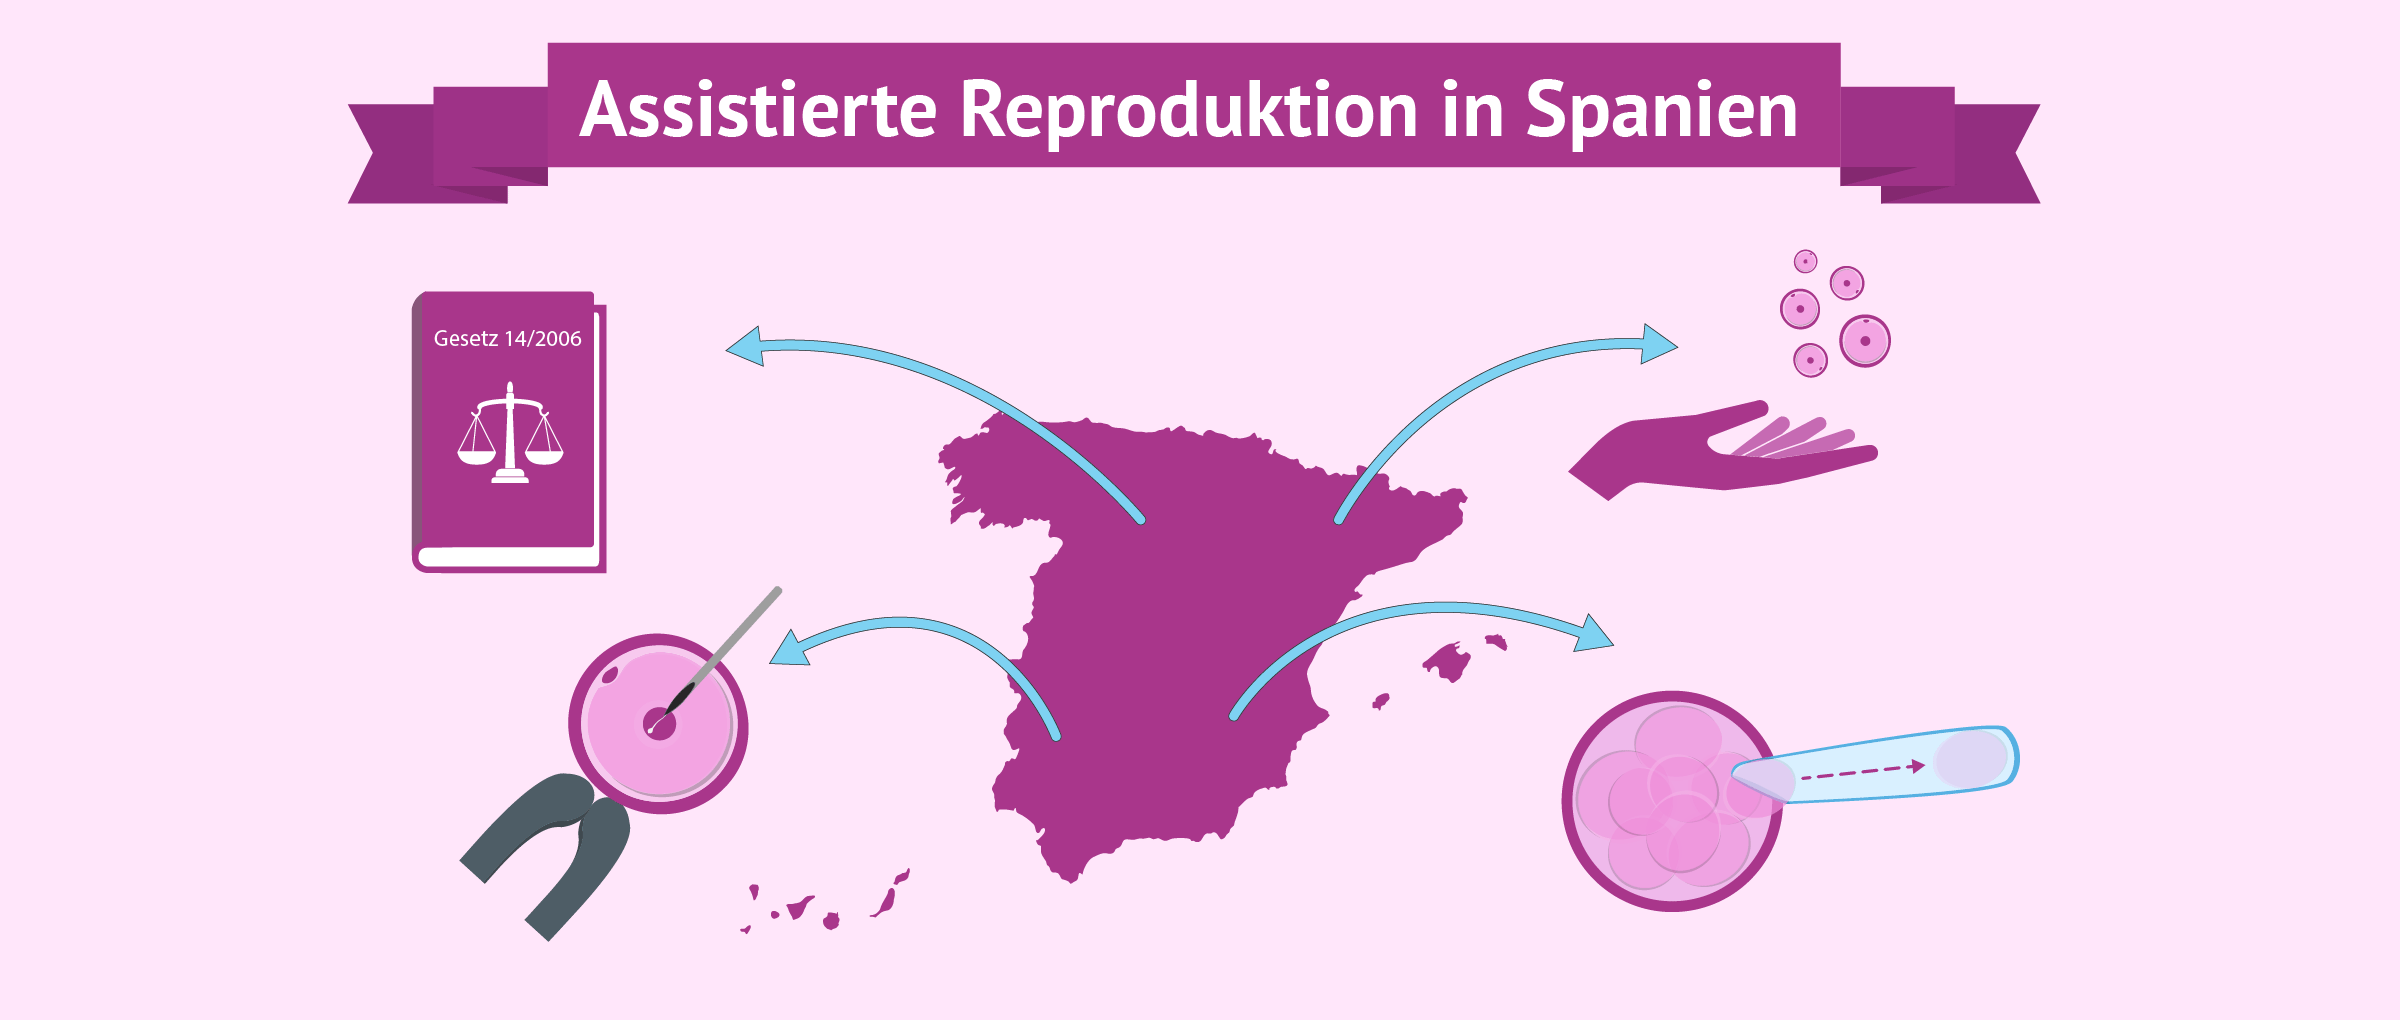 Assistierte Reproduktion in Spanien